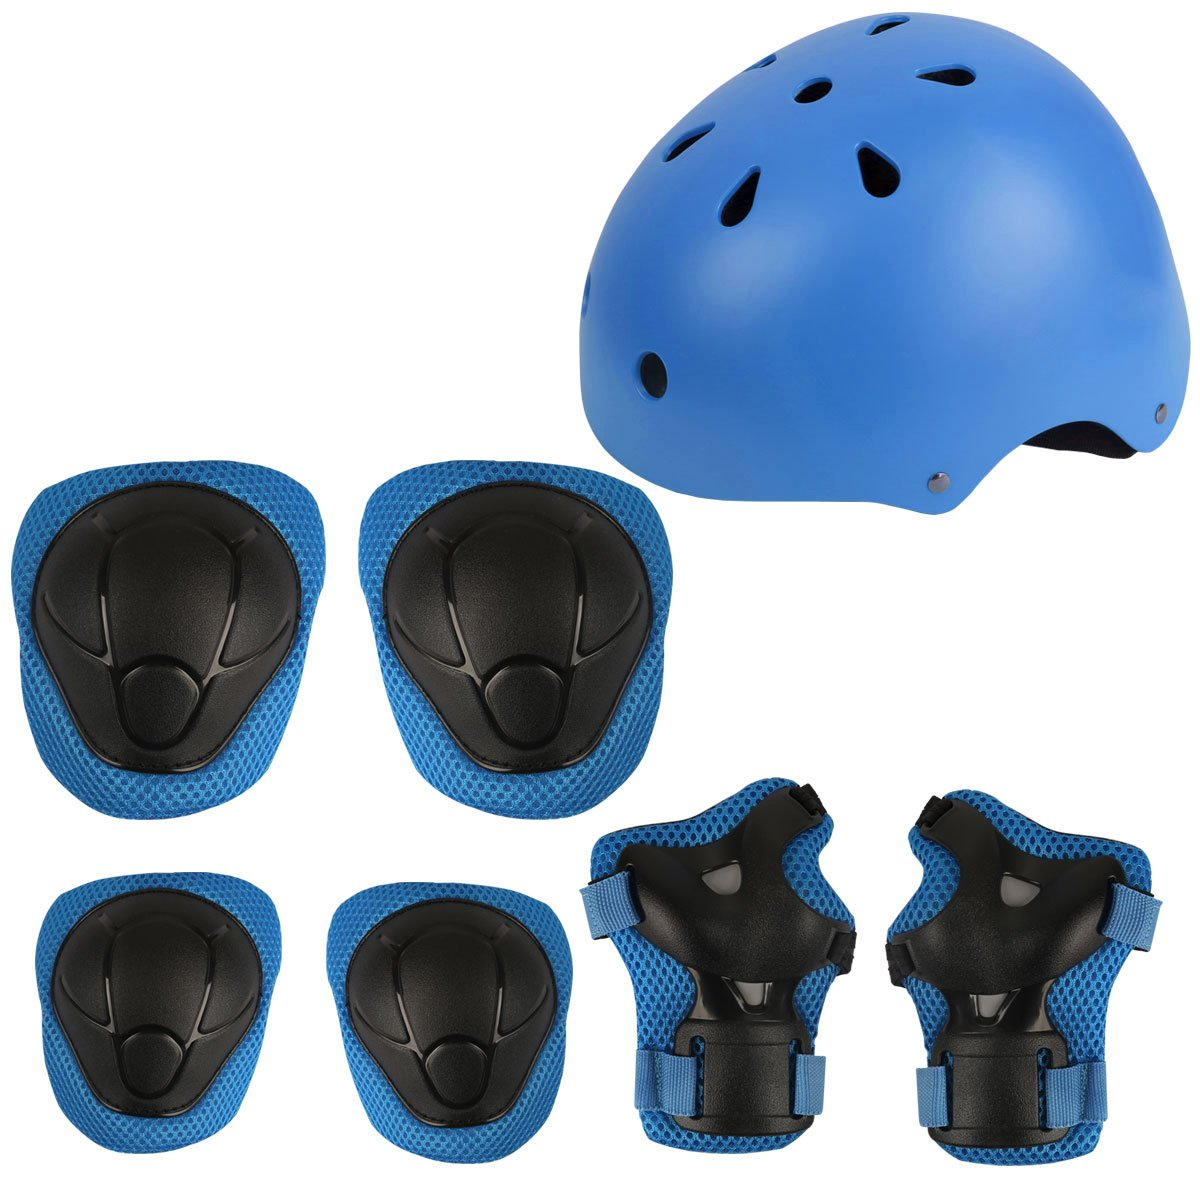 Herbalcandybox Kid's Protective Gear Set with Wrist Guard Knee Pads Elbow Pads Helmet,Blue